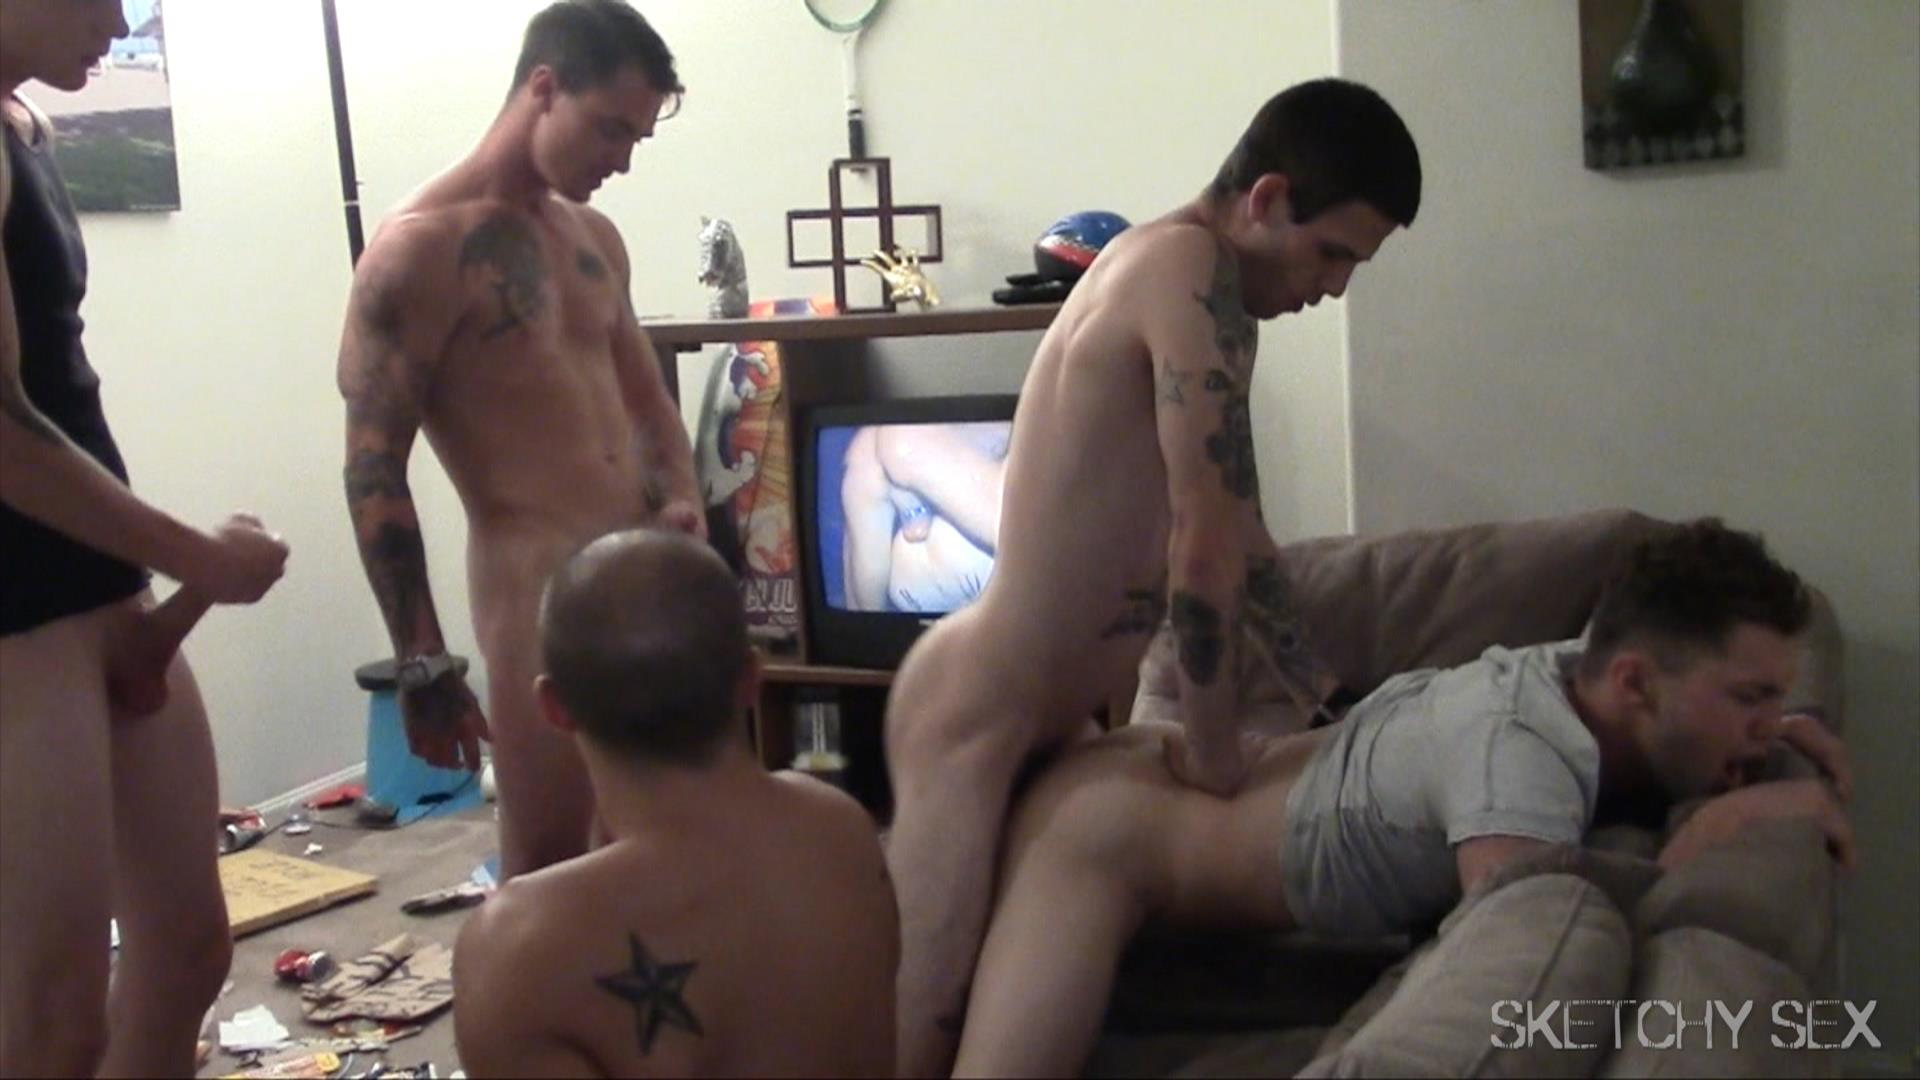 Sketchy-Sex-Bareback-Breeding-Party-Amateur-Gay-Porn-14 Hosting An Anonymous Bareback Breeding Party